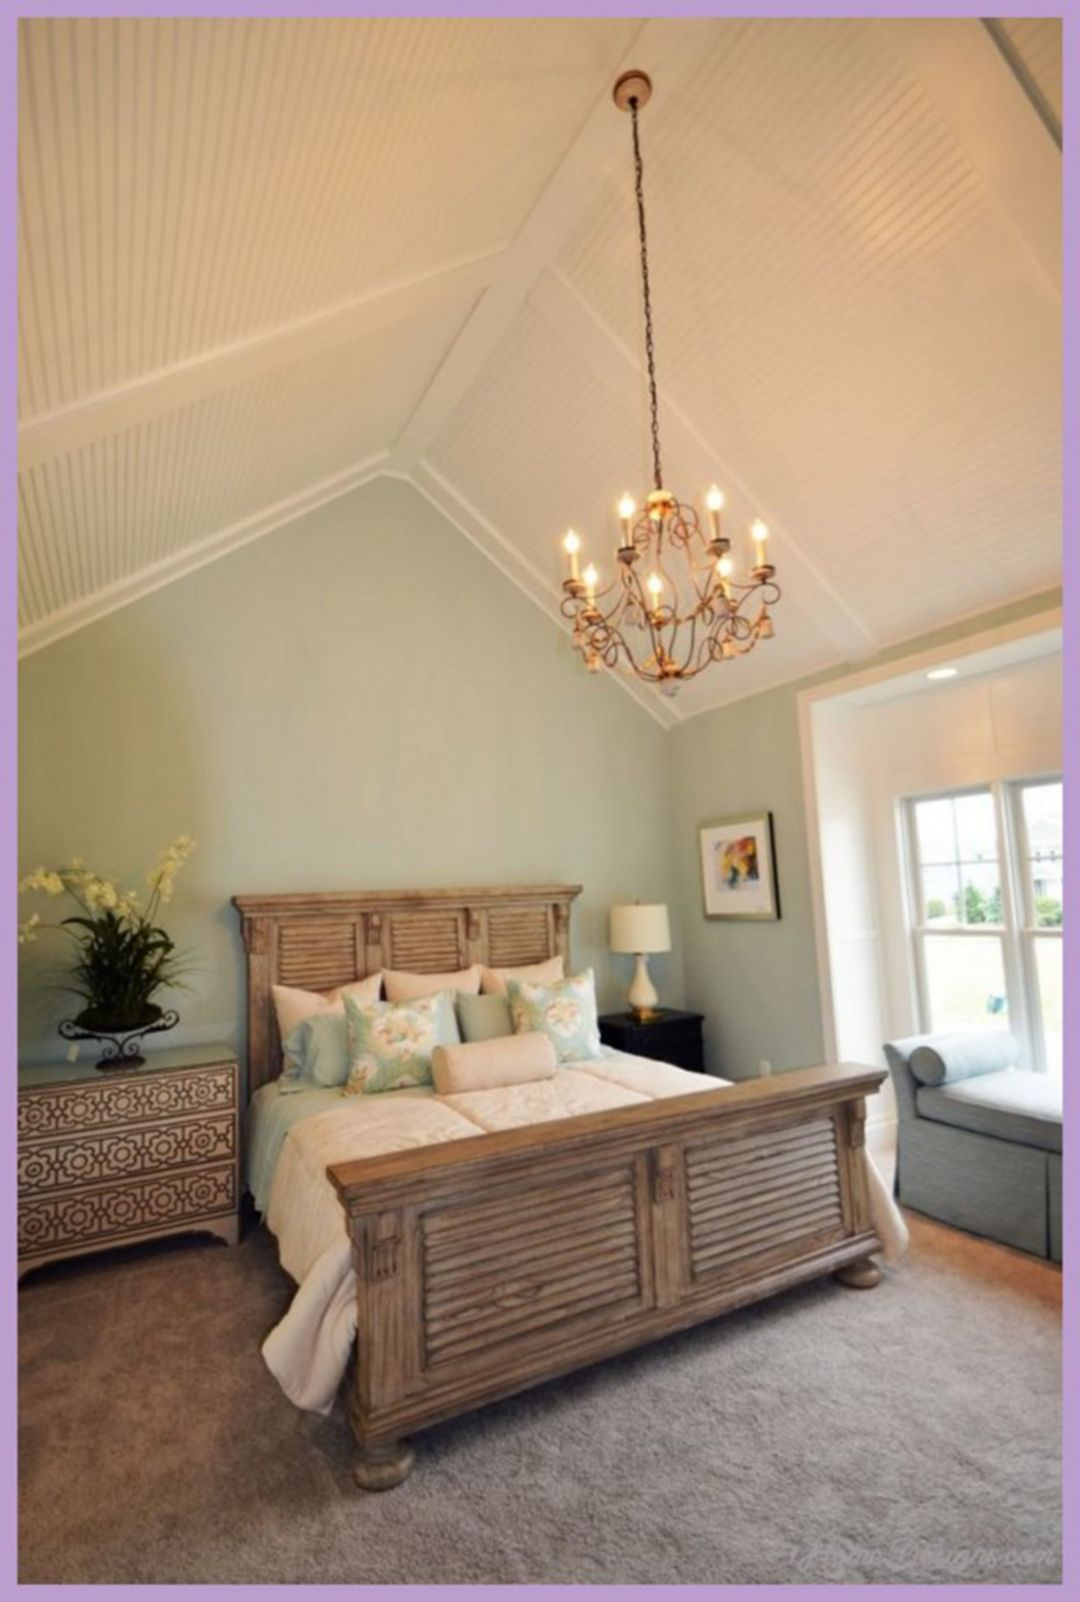 20 Vaulted Ceiling Bedroom Design Ideas for Your